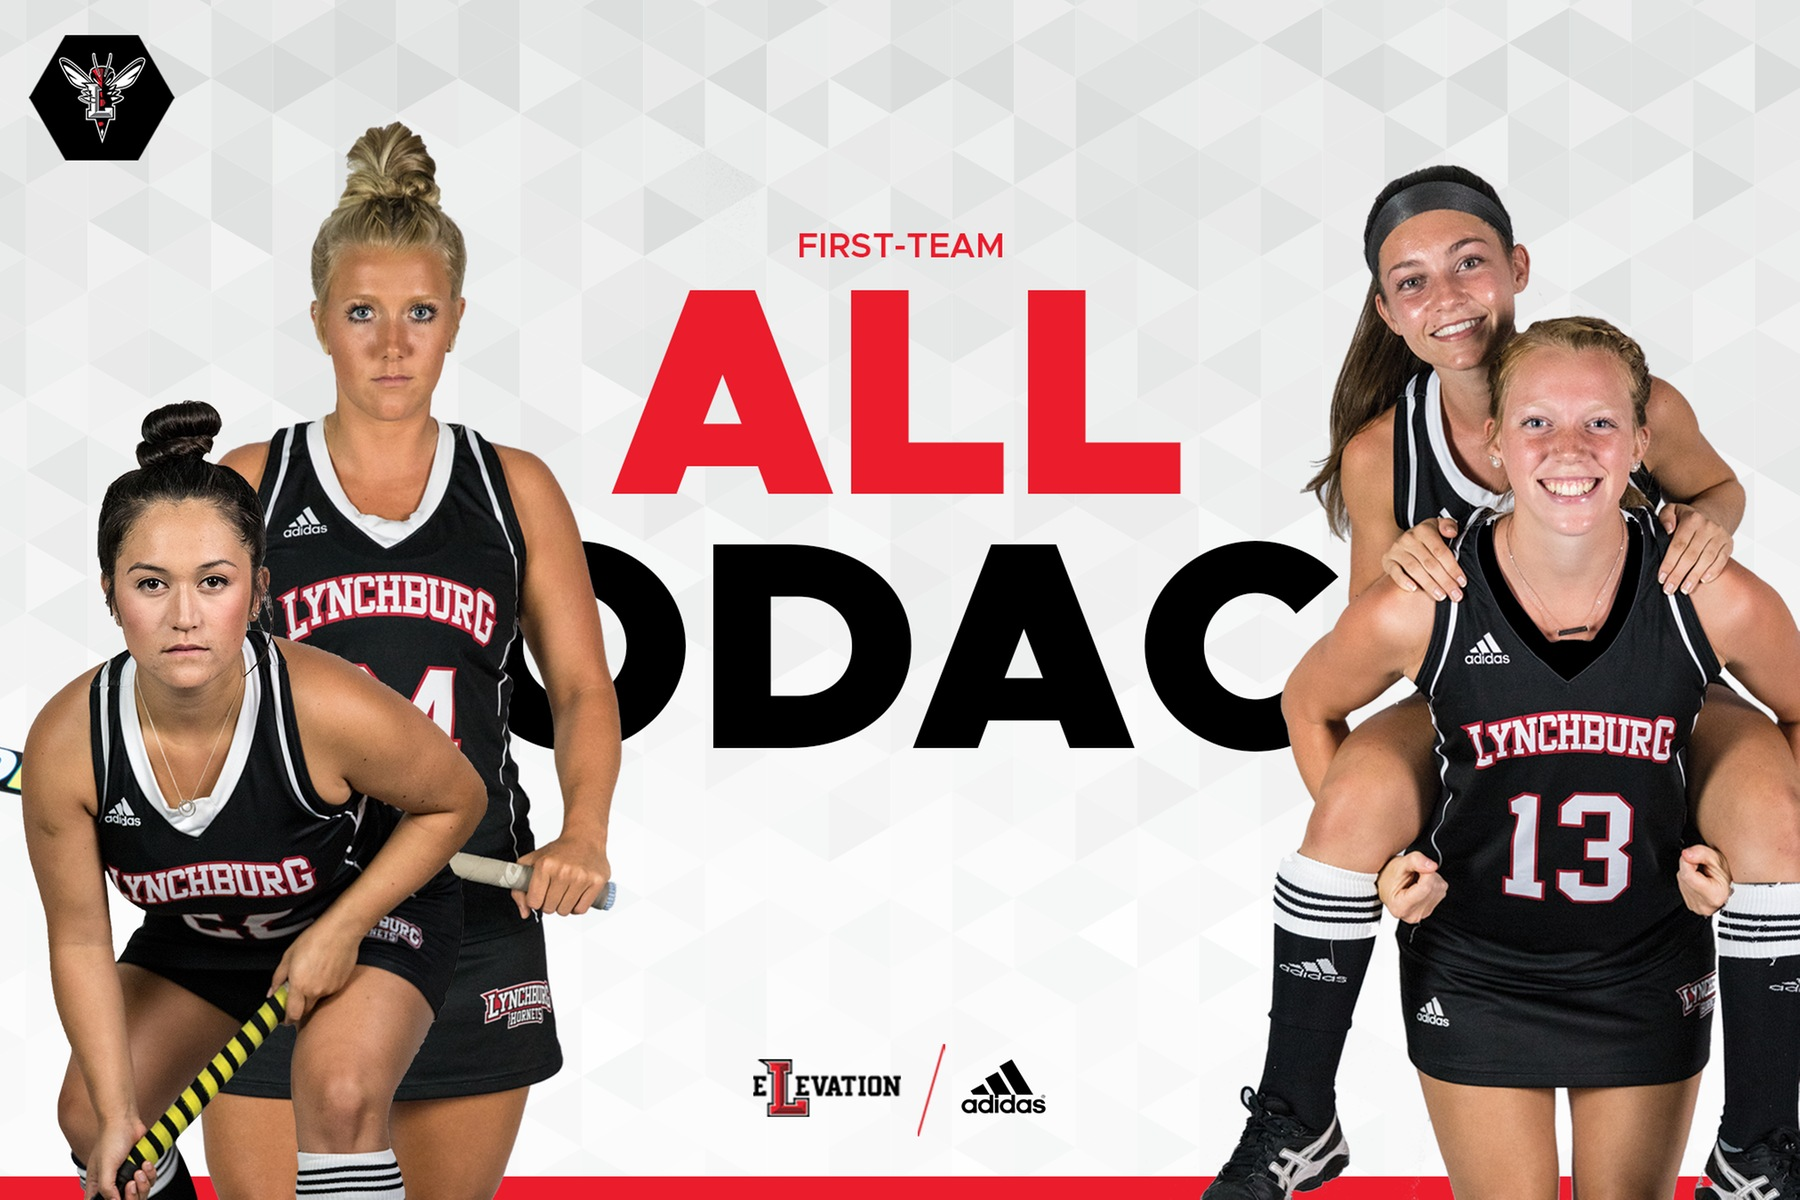 Cutout images of Lynchburg's four first-team all-conference players on white background. Text in red and black: First-team all-ODAC. Lynchburg and adidas logos at bottom.